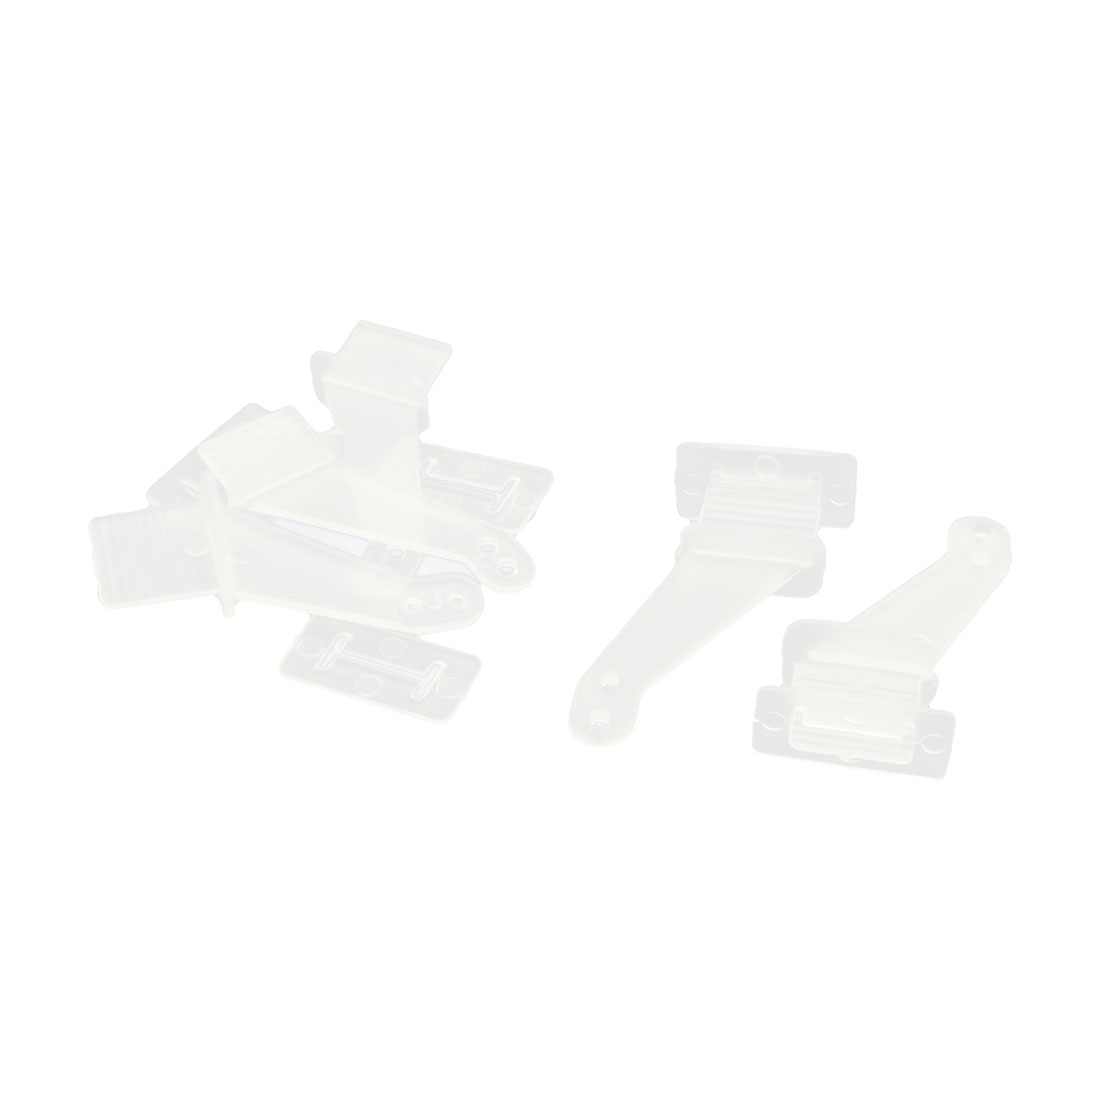 5pcs RC Remote Control Airplane Spare Parts 32x12x10mm Rudder Angle Clear